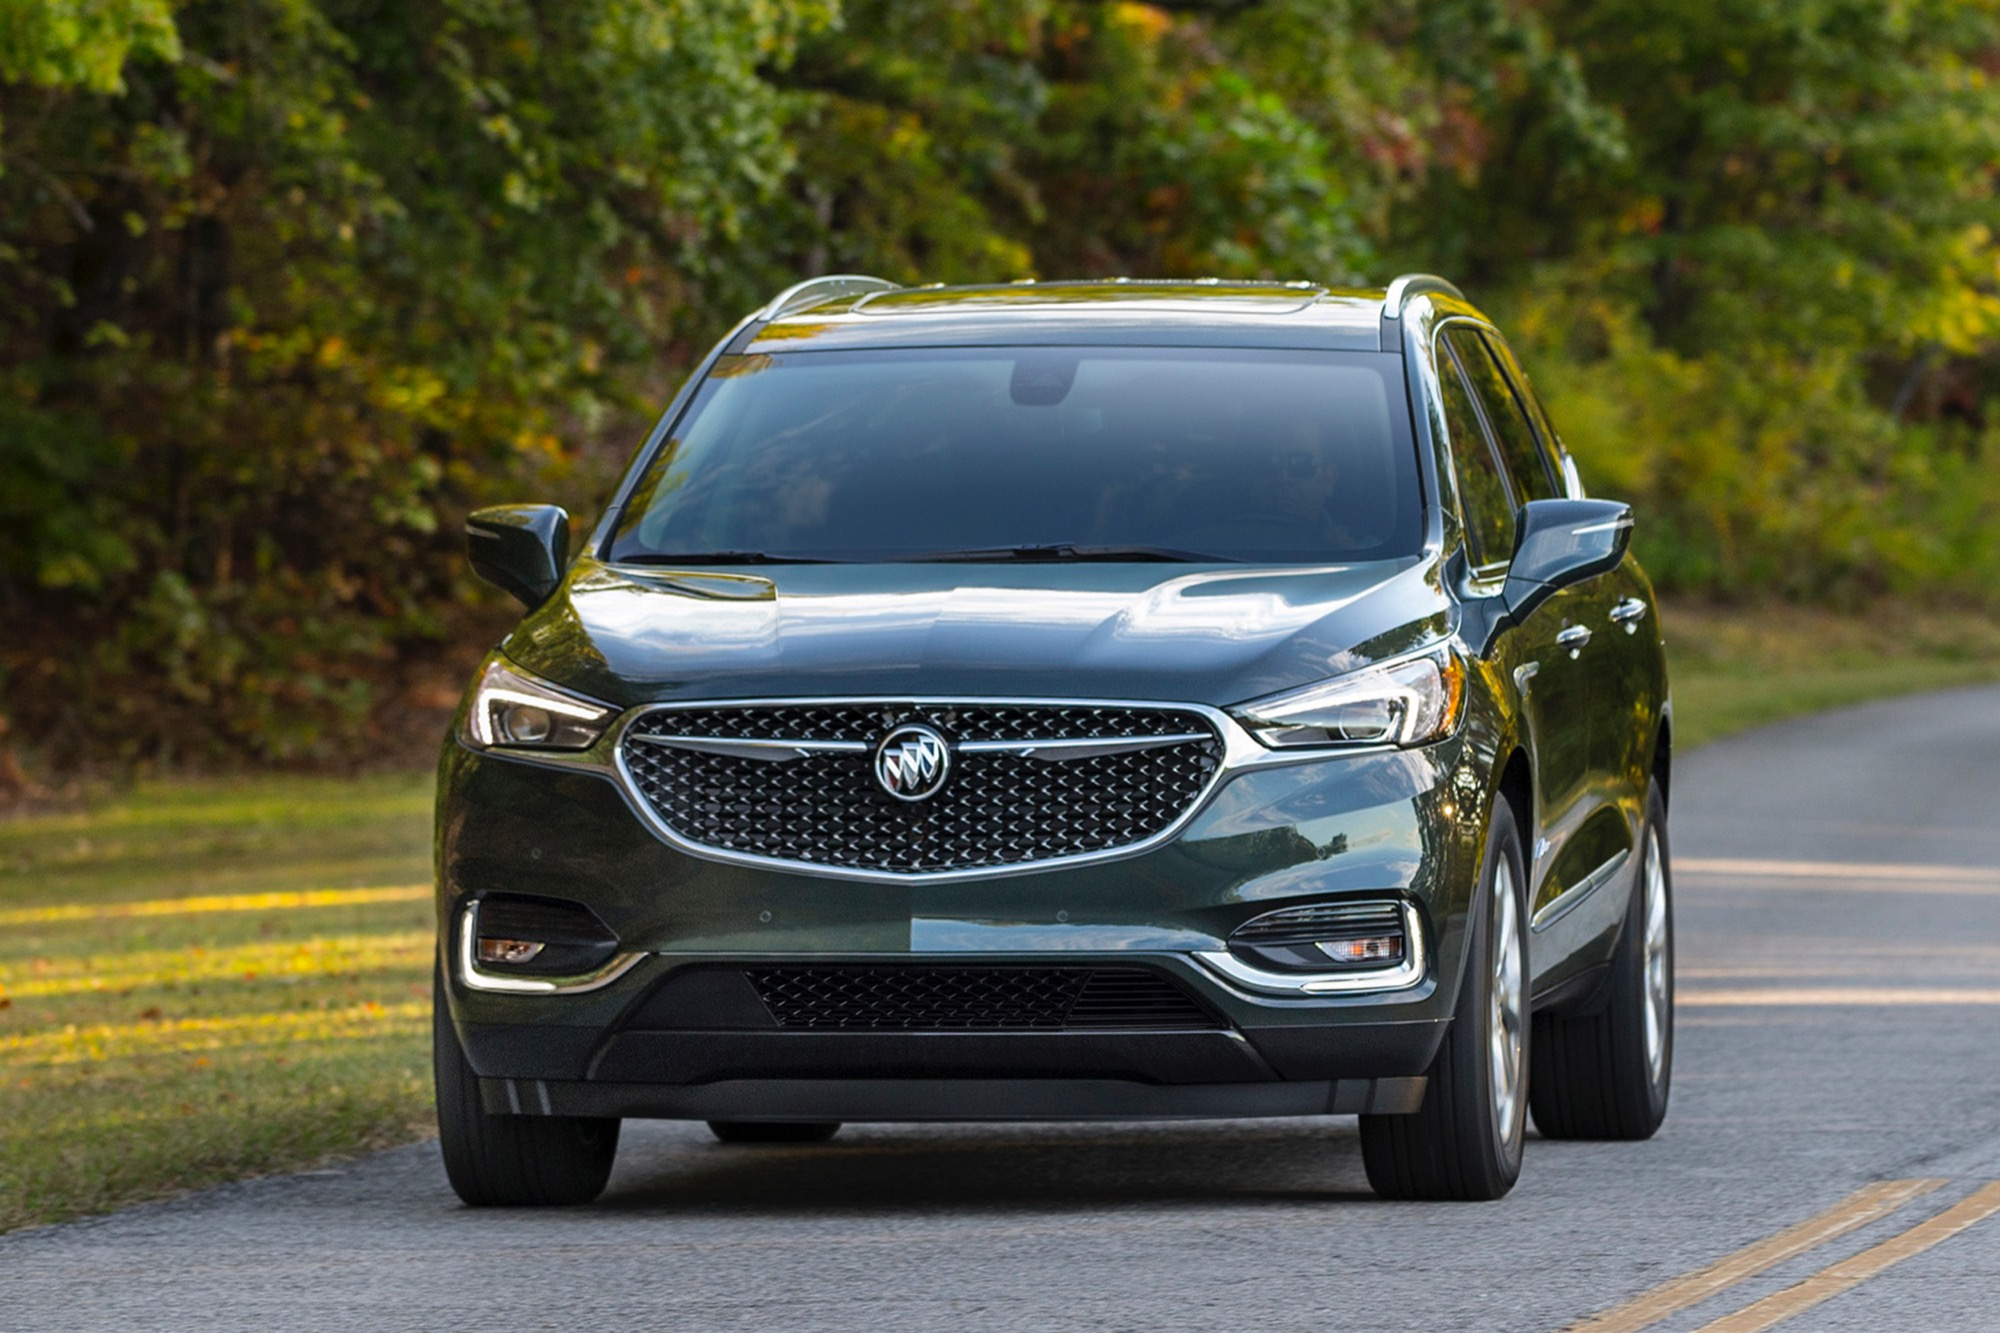 Buyers Don't Care That The Buick Enclave Doesn't Have The New 2022 Buick Enclave New Colors, Oil Type, Options